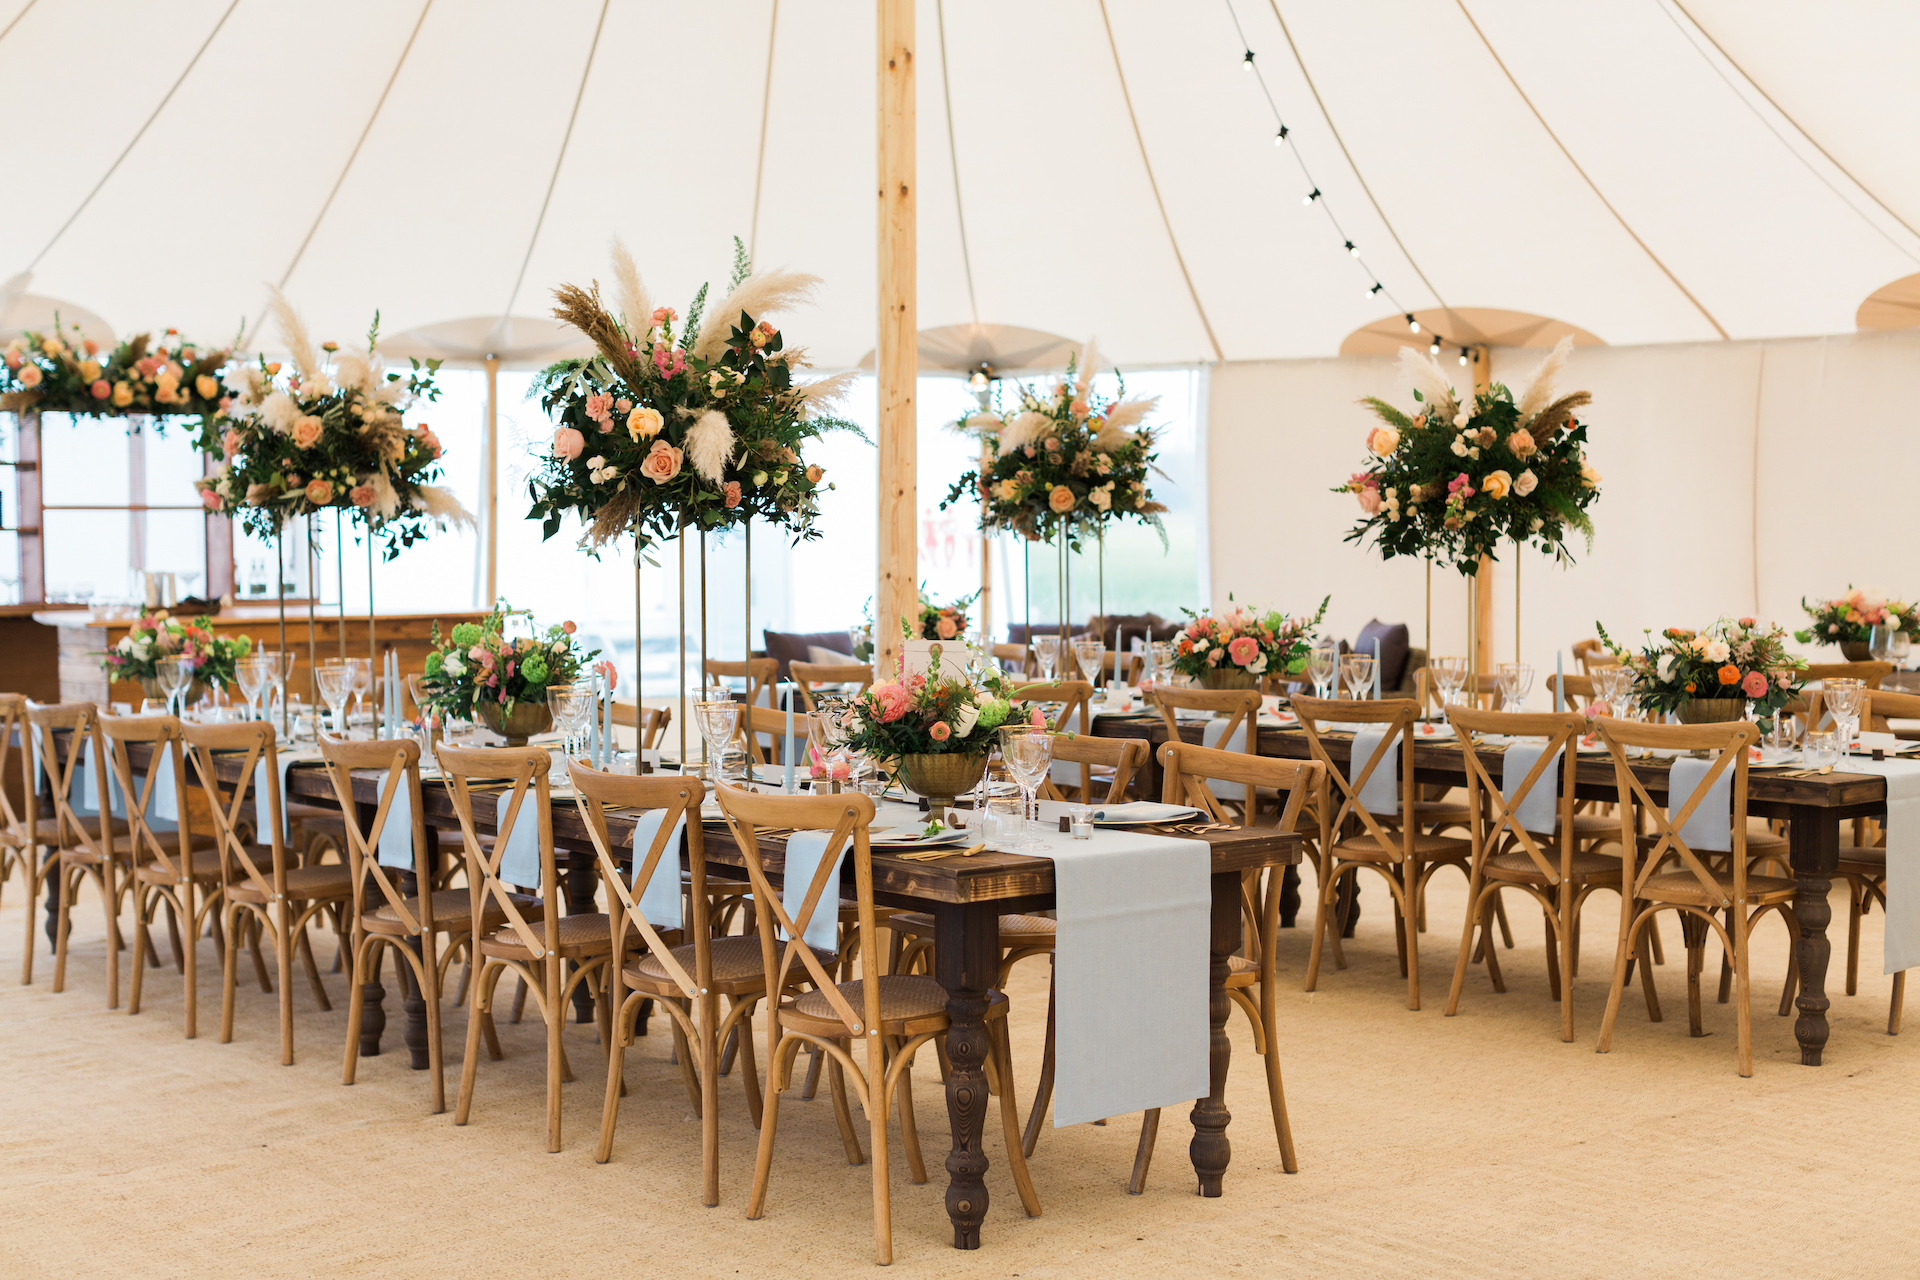 PapaKåta Spring Open Weekend Sperry Tent captured by Lucy Davenport Photography: Farmhouse Tables & Cross Back Chairs, Just 4 Linen, White House Event Crockery, Floral Centrepieces by Leafy Couture